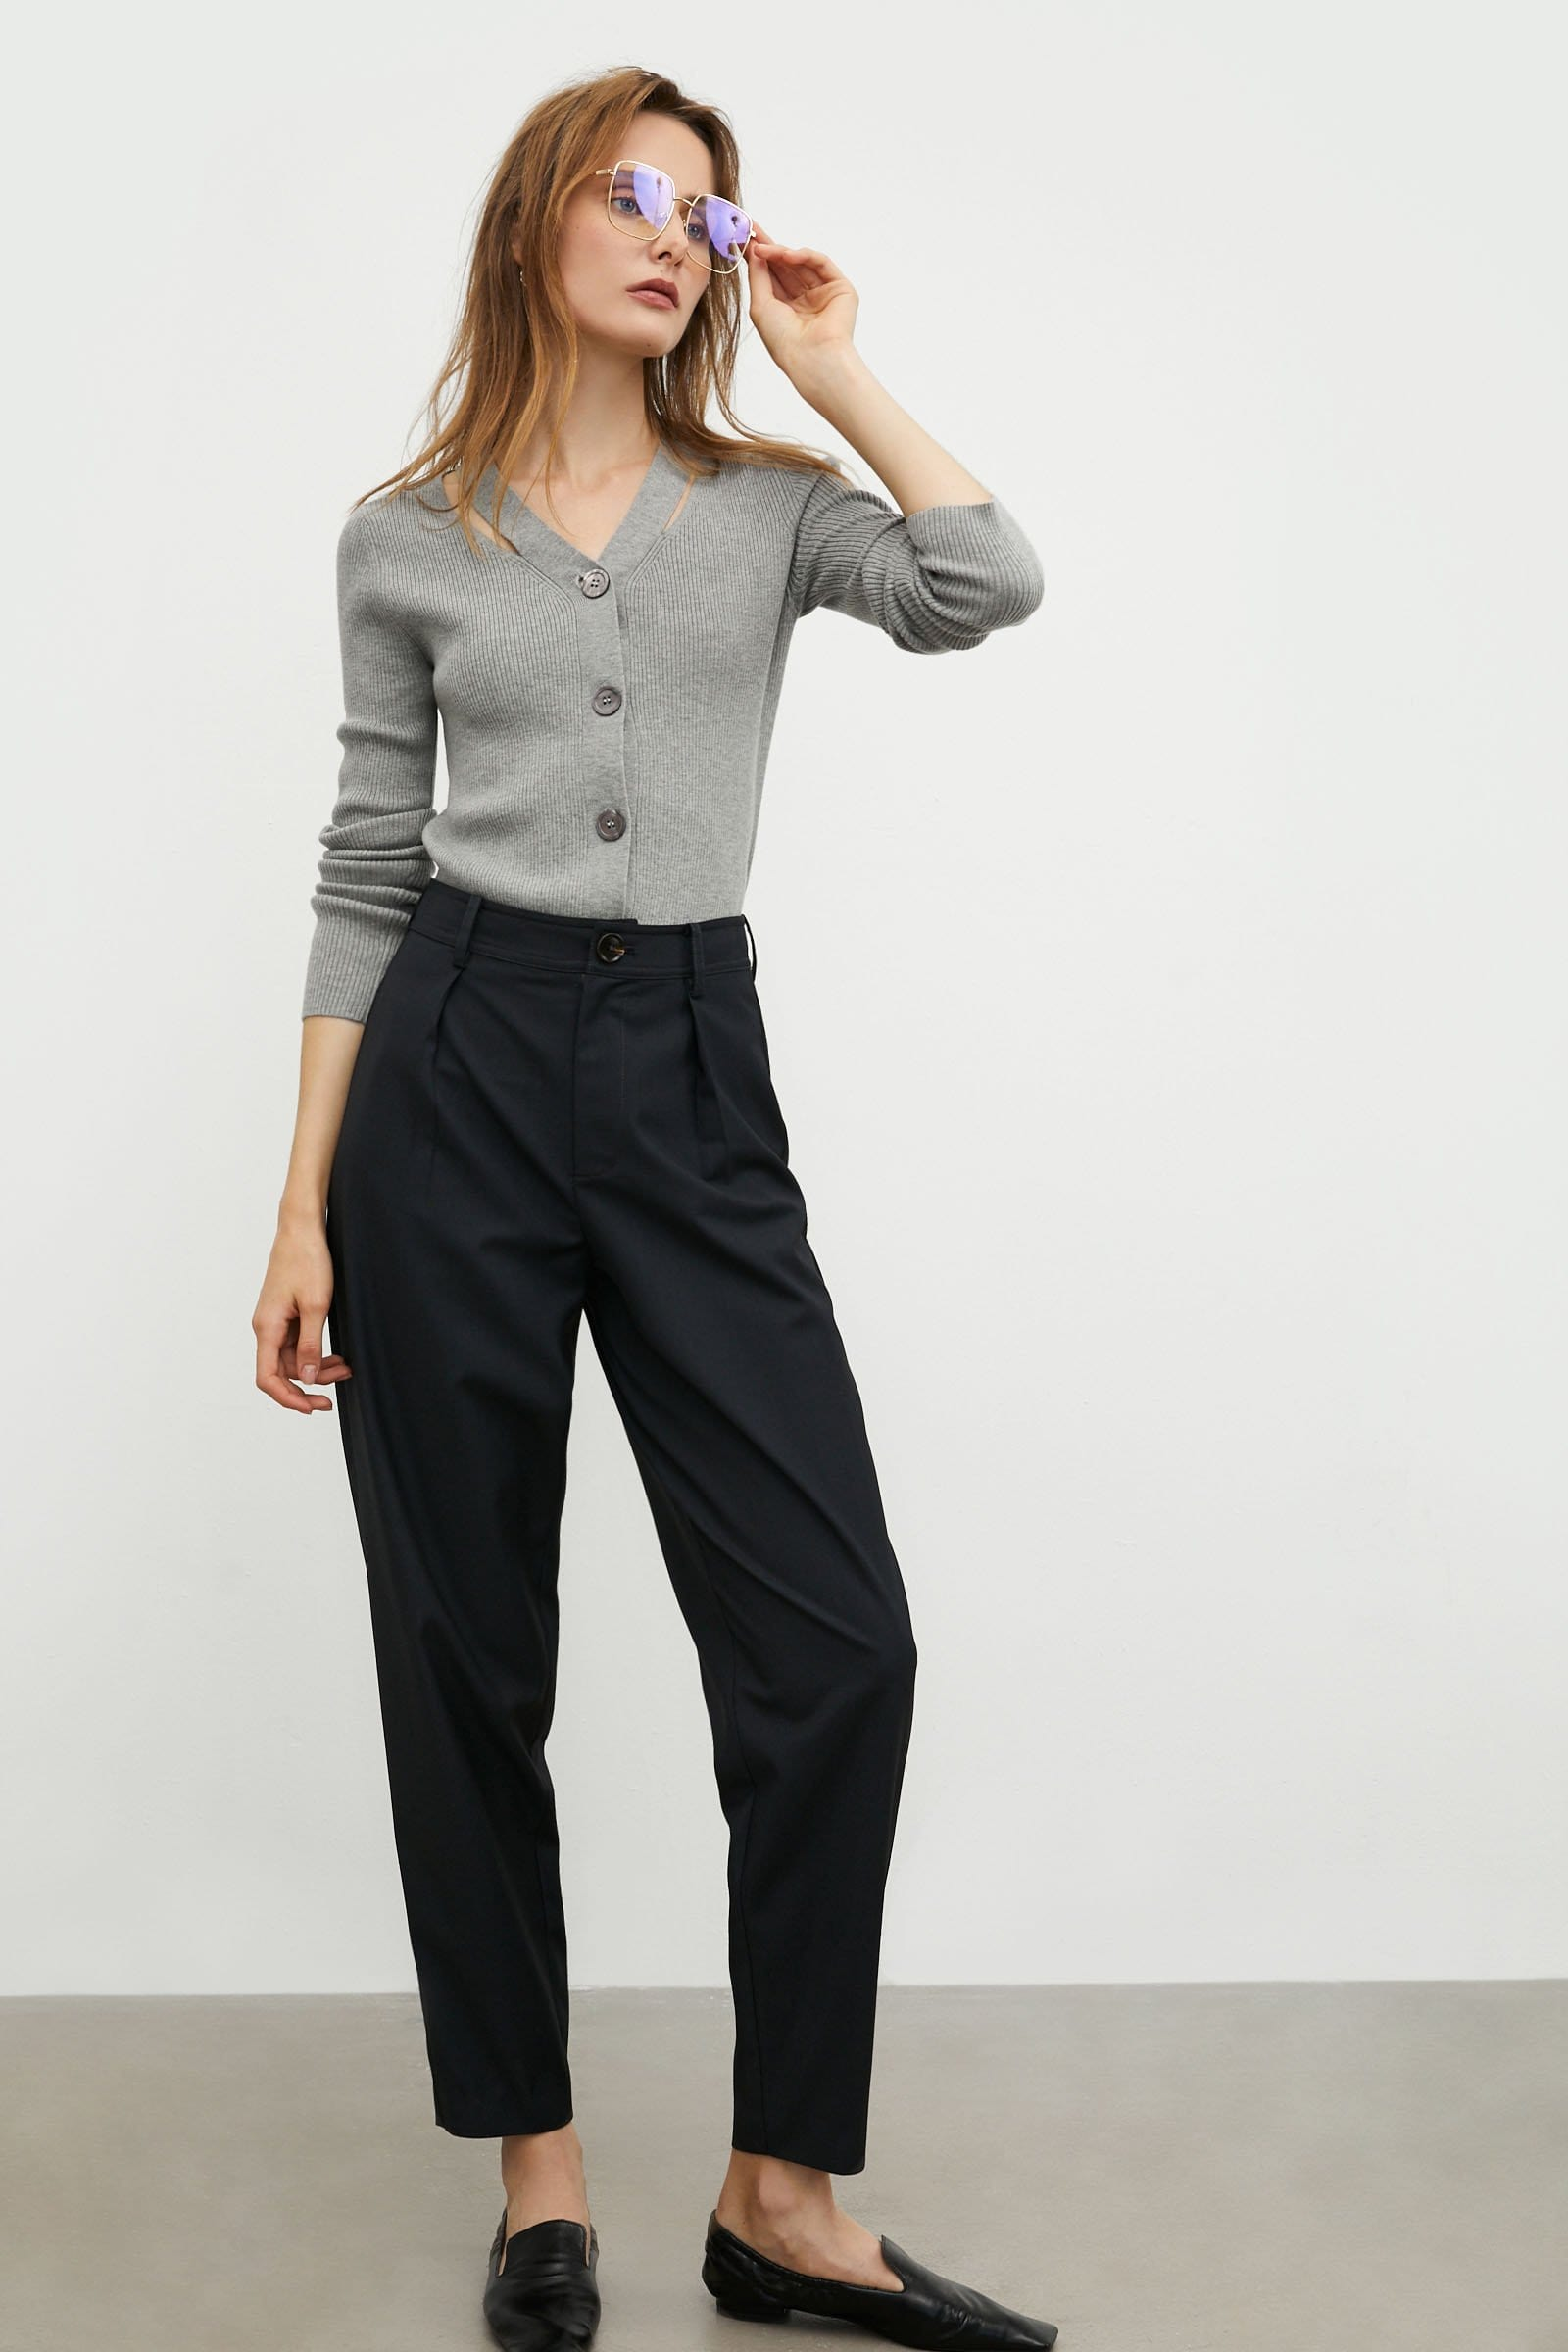 Vanya Steel Tapered Trousers